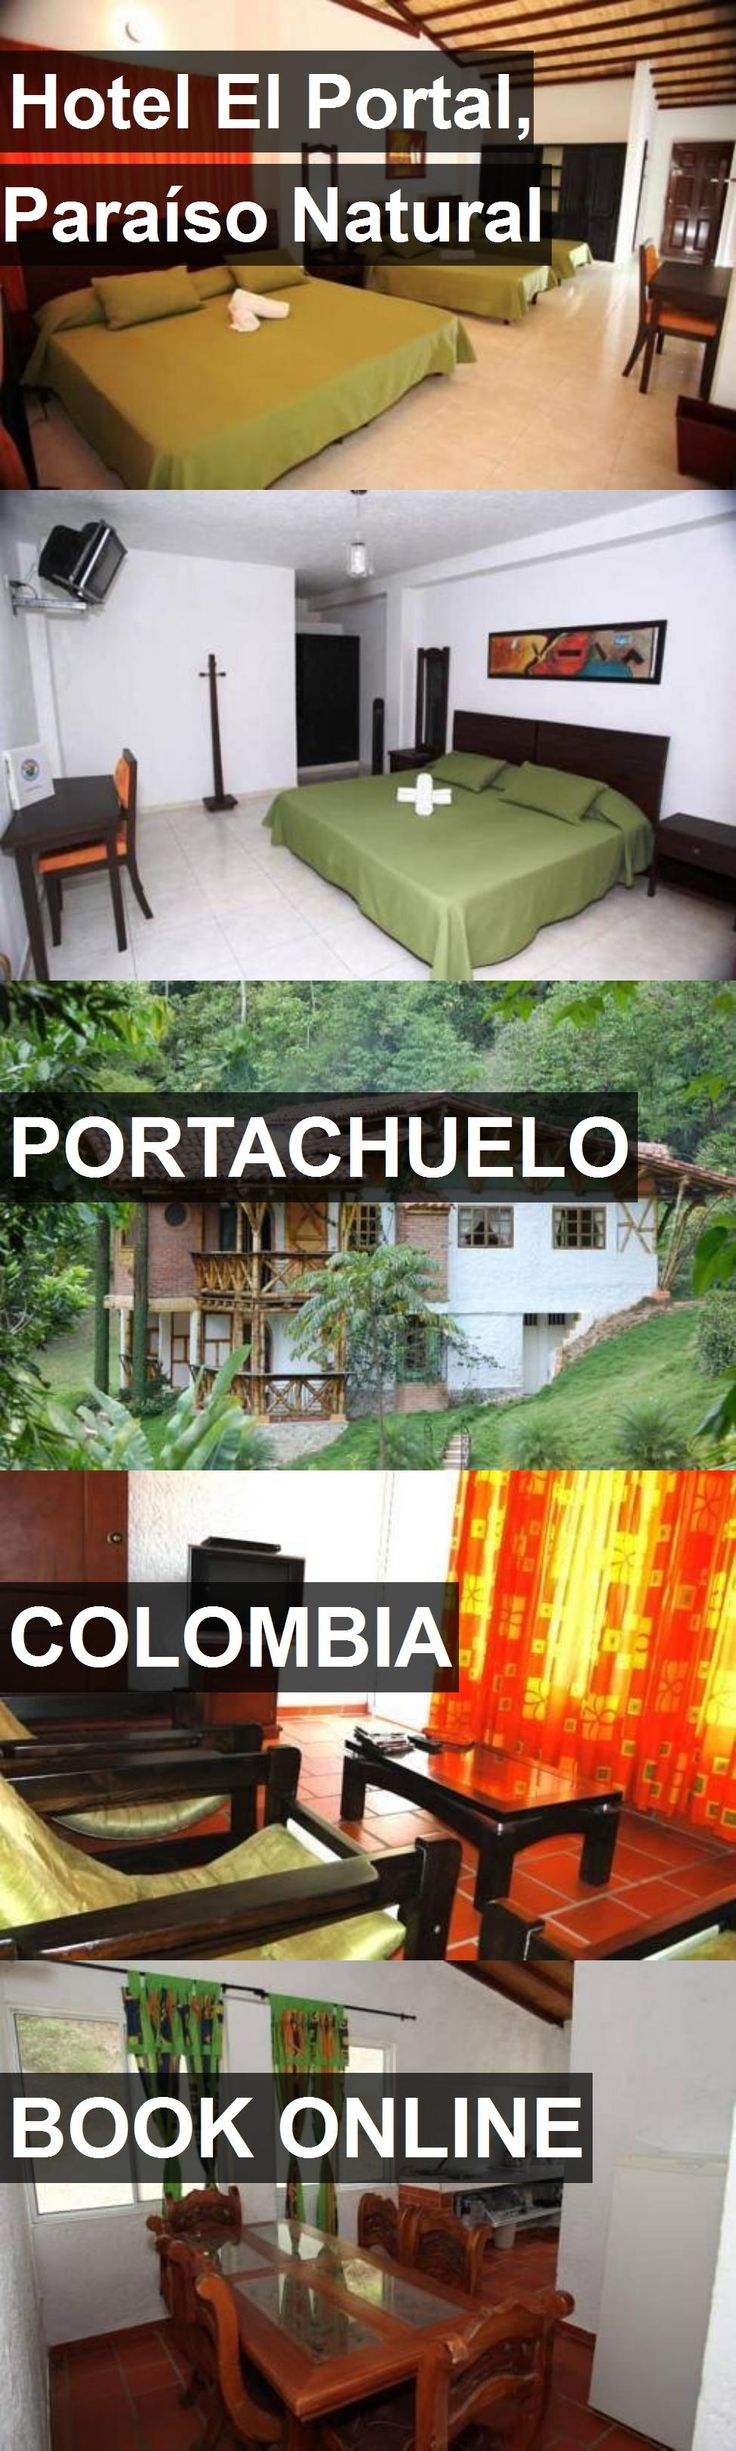 Hotel El Portal, Paraíso Natural in Portachuelo, Colombia. For more information, photos, reviews and best prices please follow the link. #Colombia #Portachuelo #travel #vacation #hotel